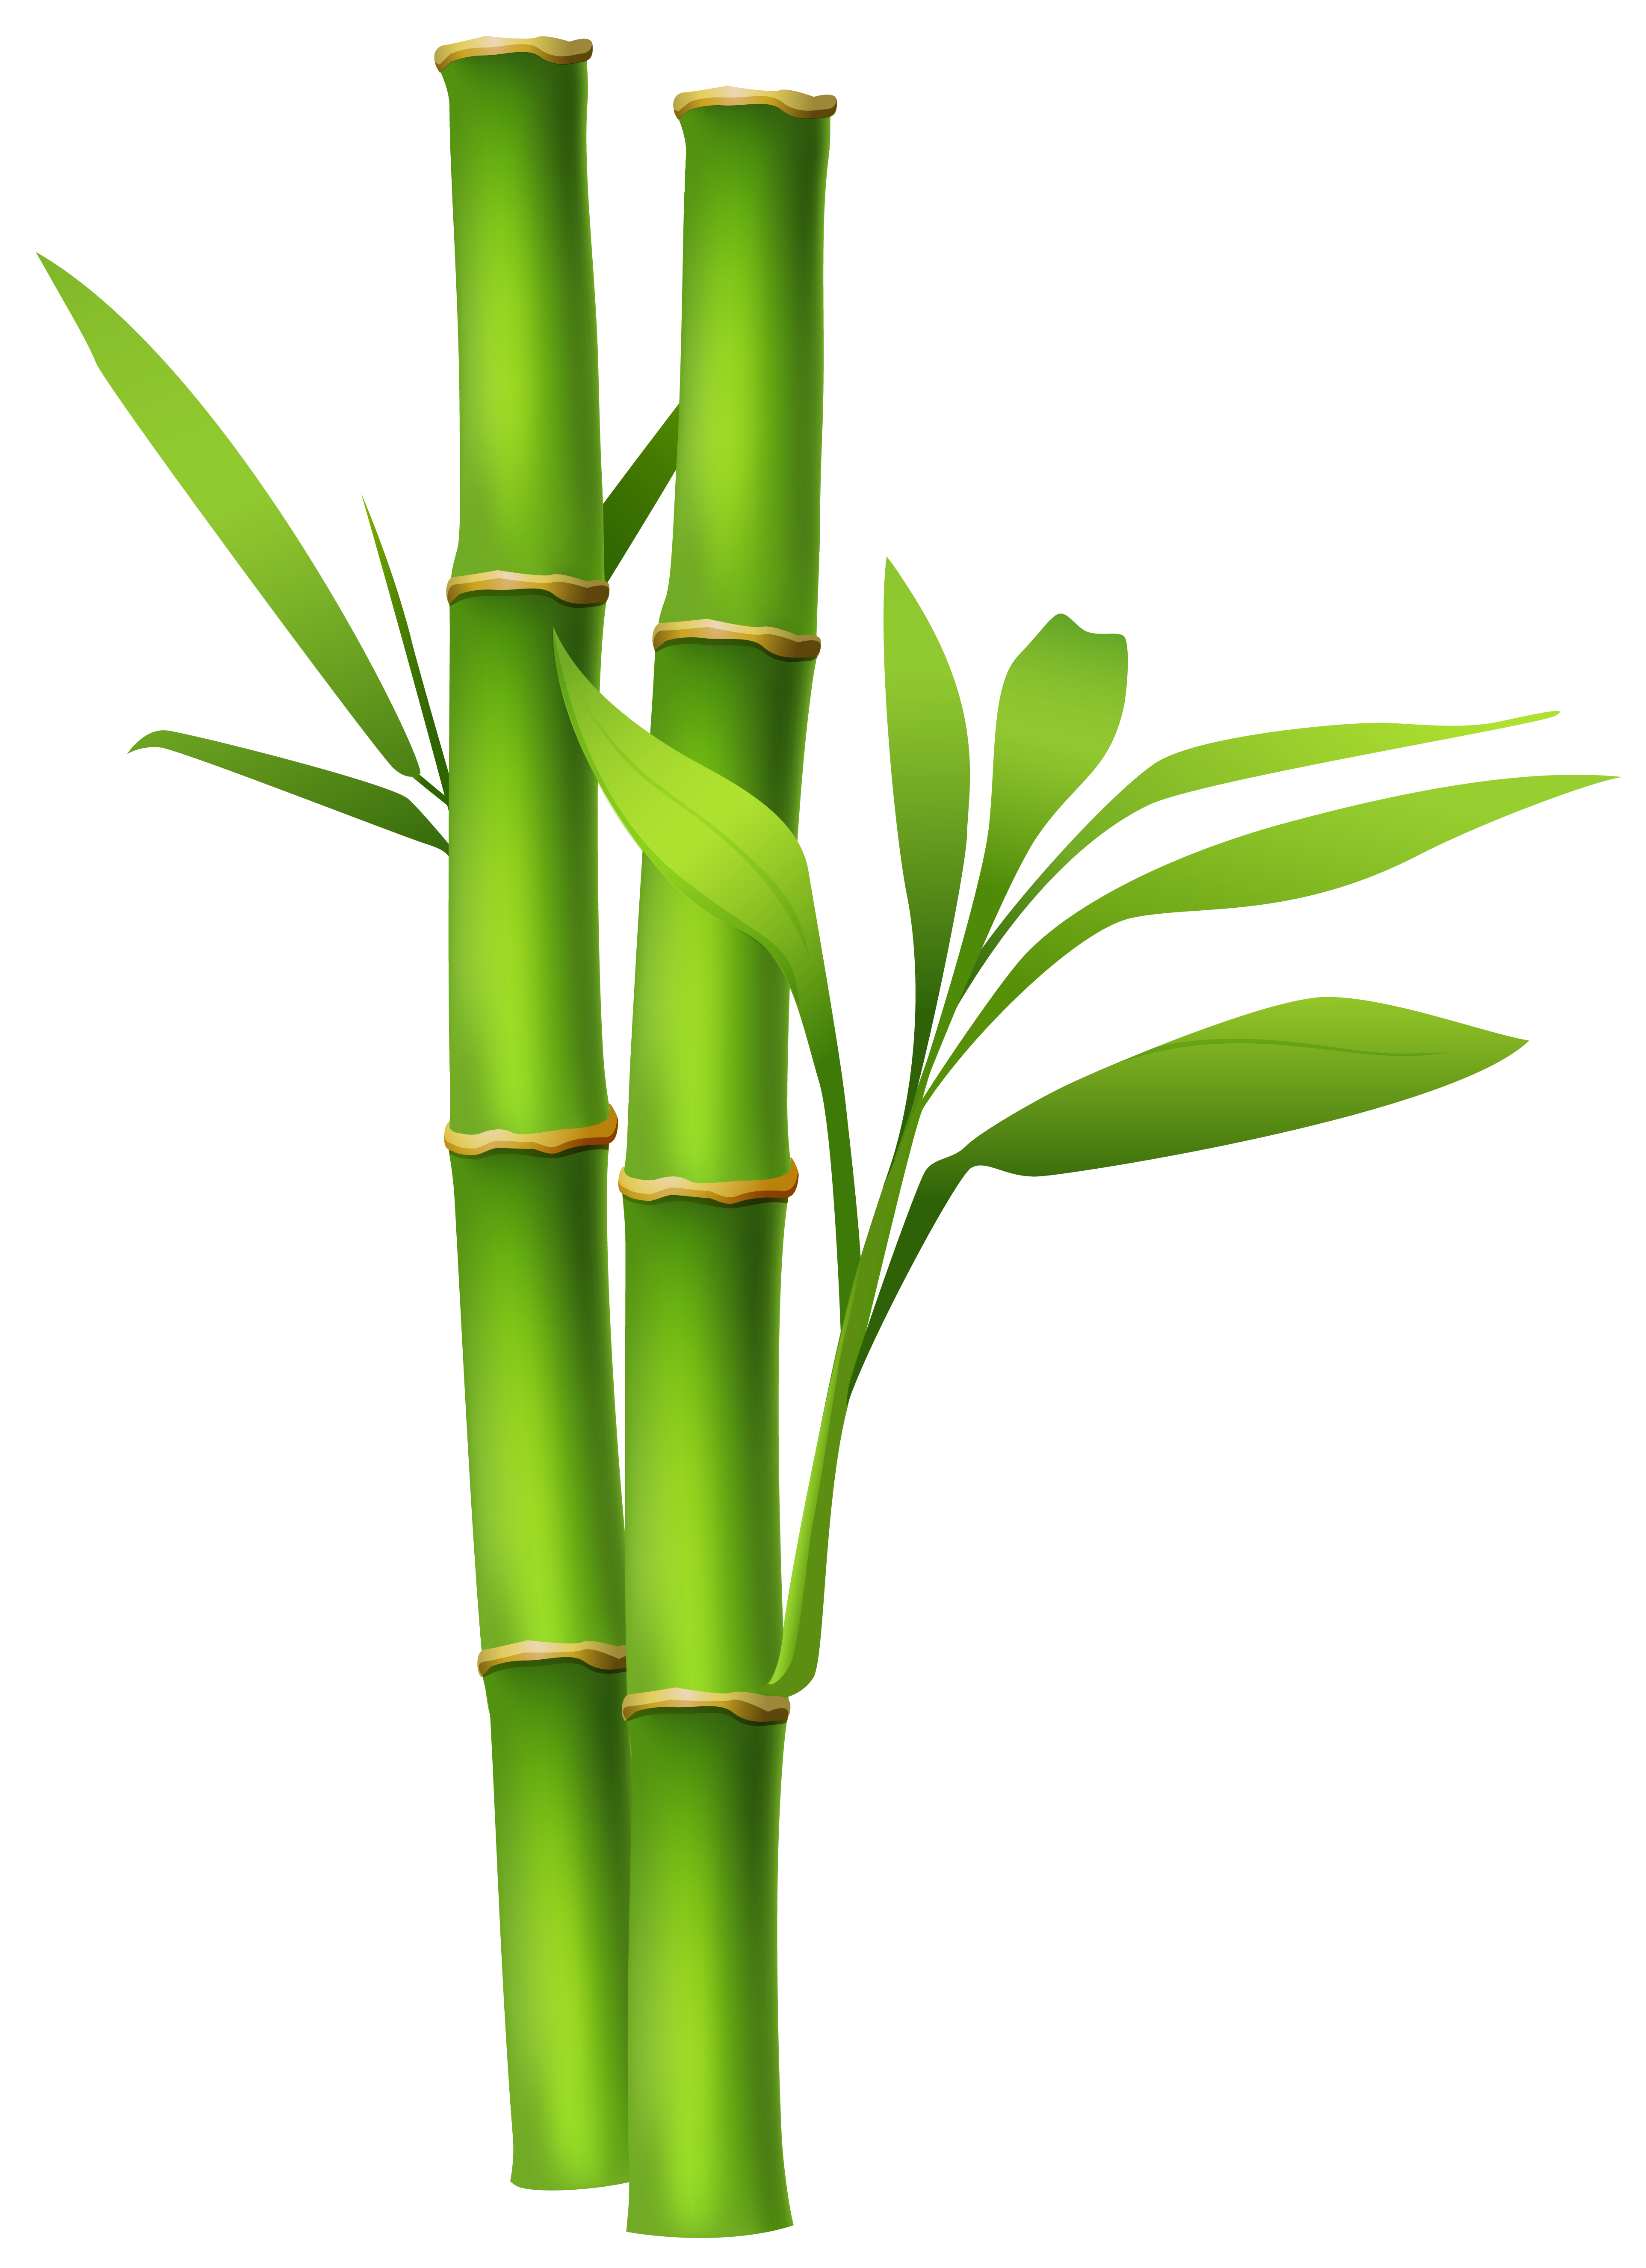 Png image gallery yopriceville. Bamboo clipart